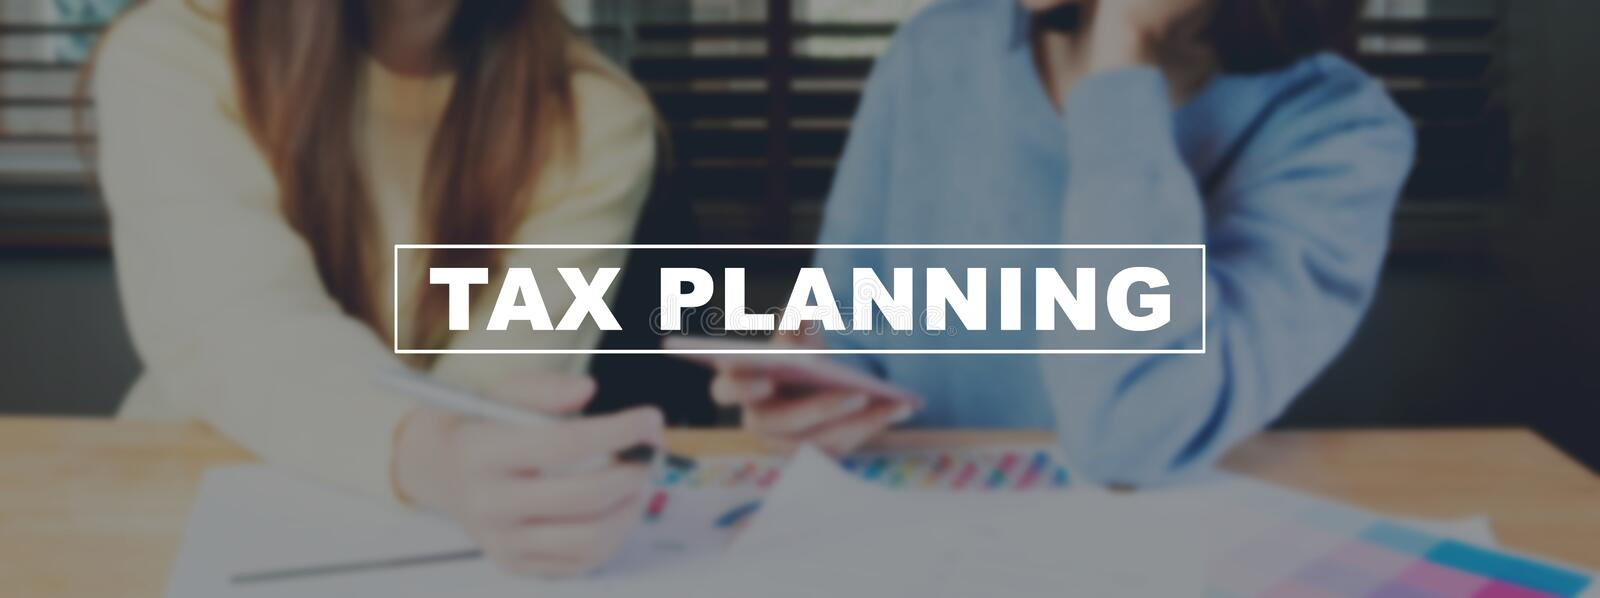 Text Tax planning on background women are working on smartphone. The concept of working with a lot of information. royalty free stock image